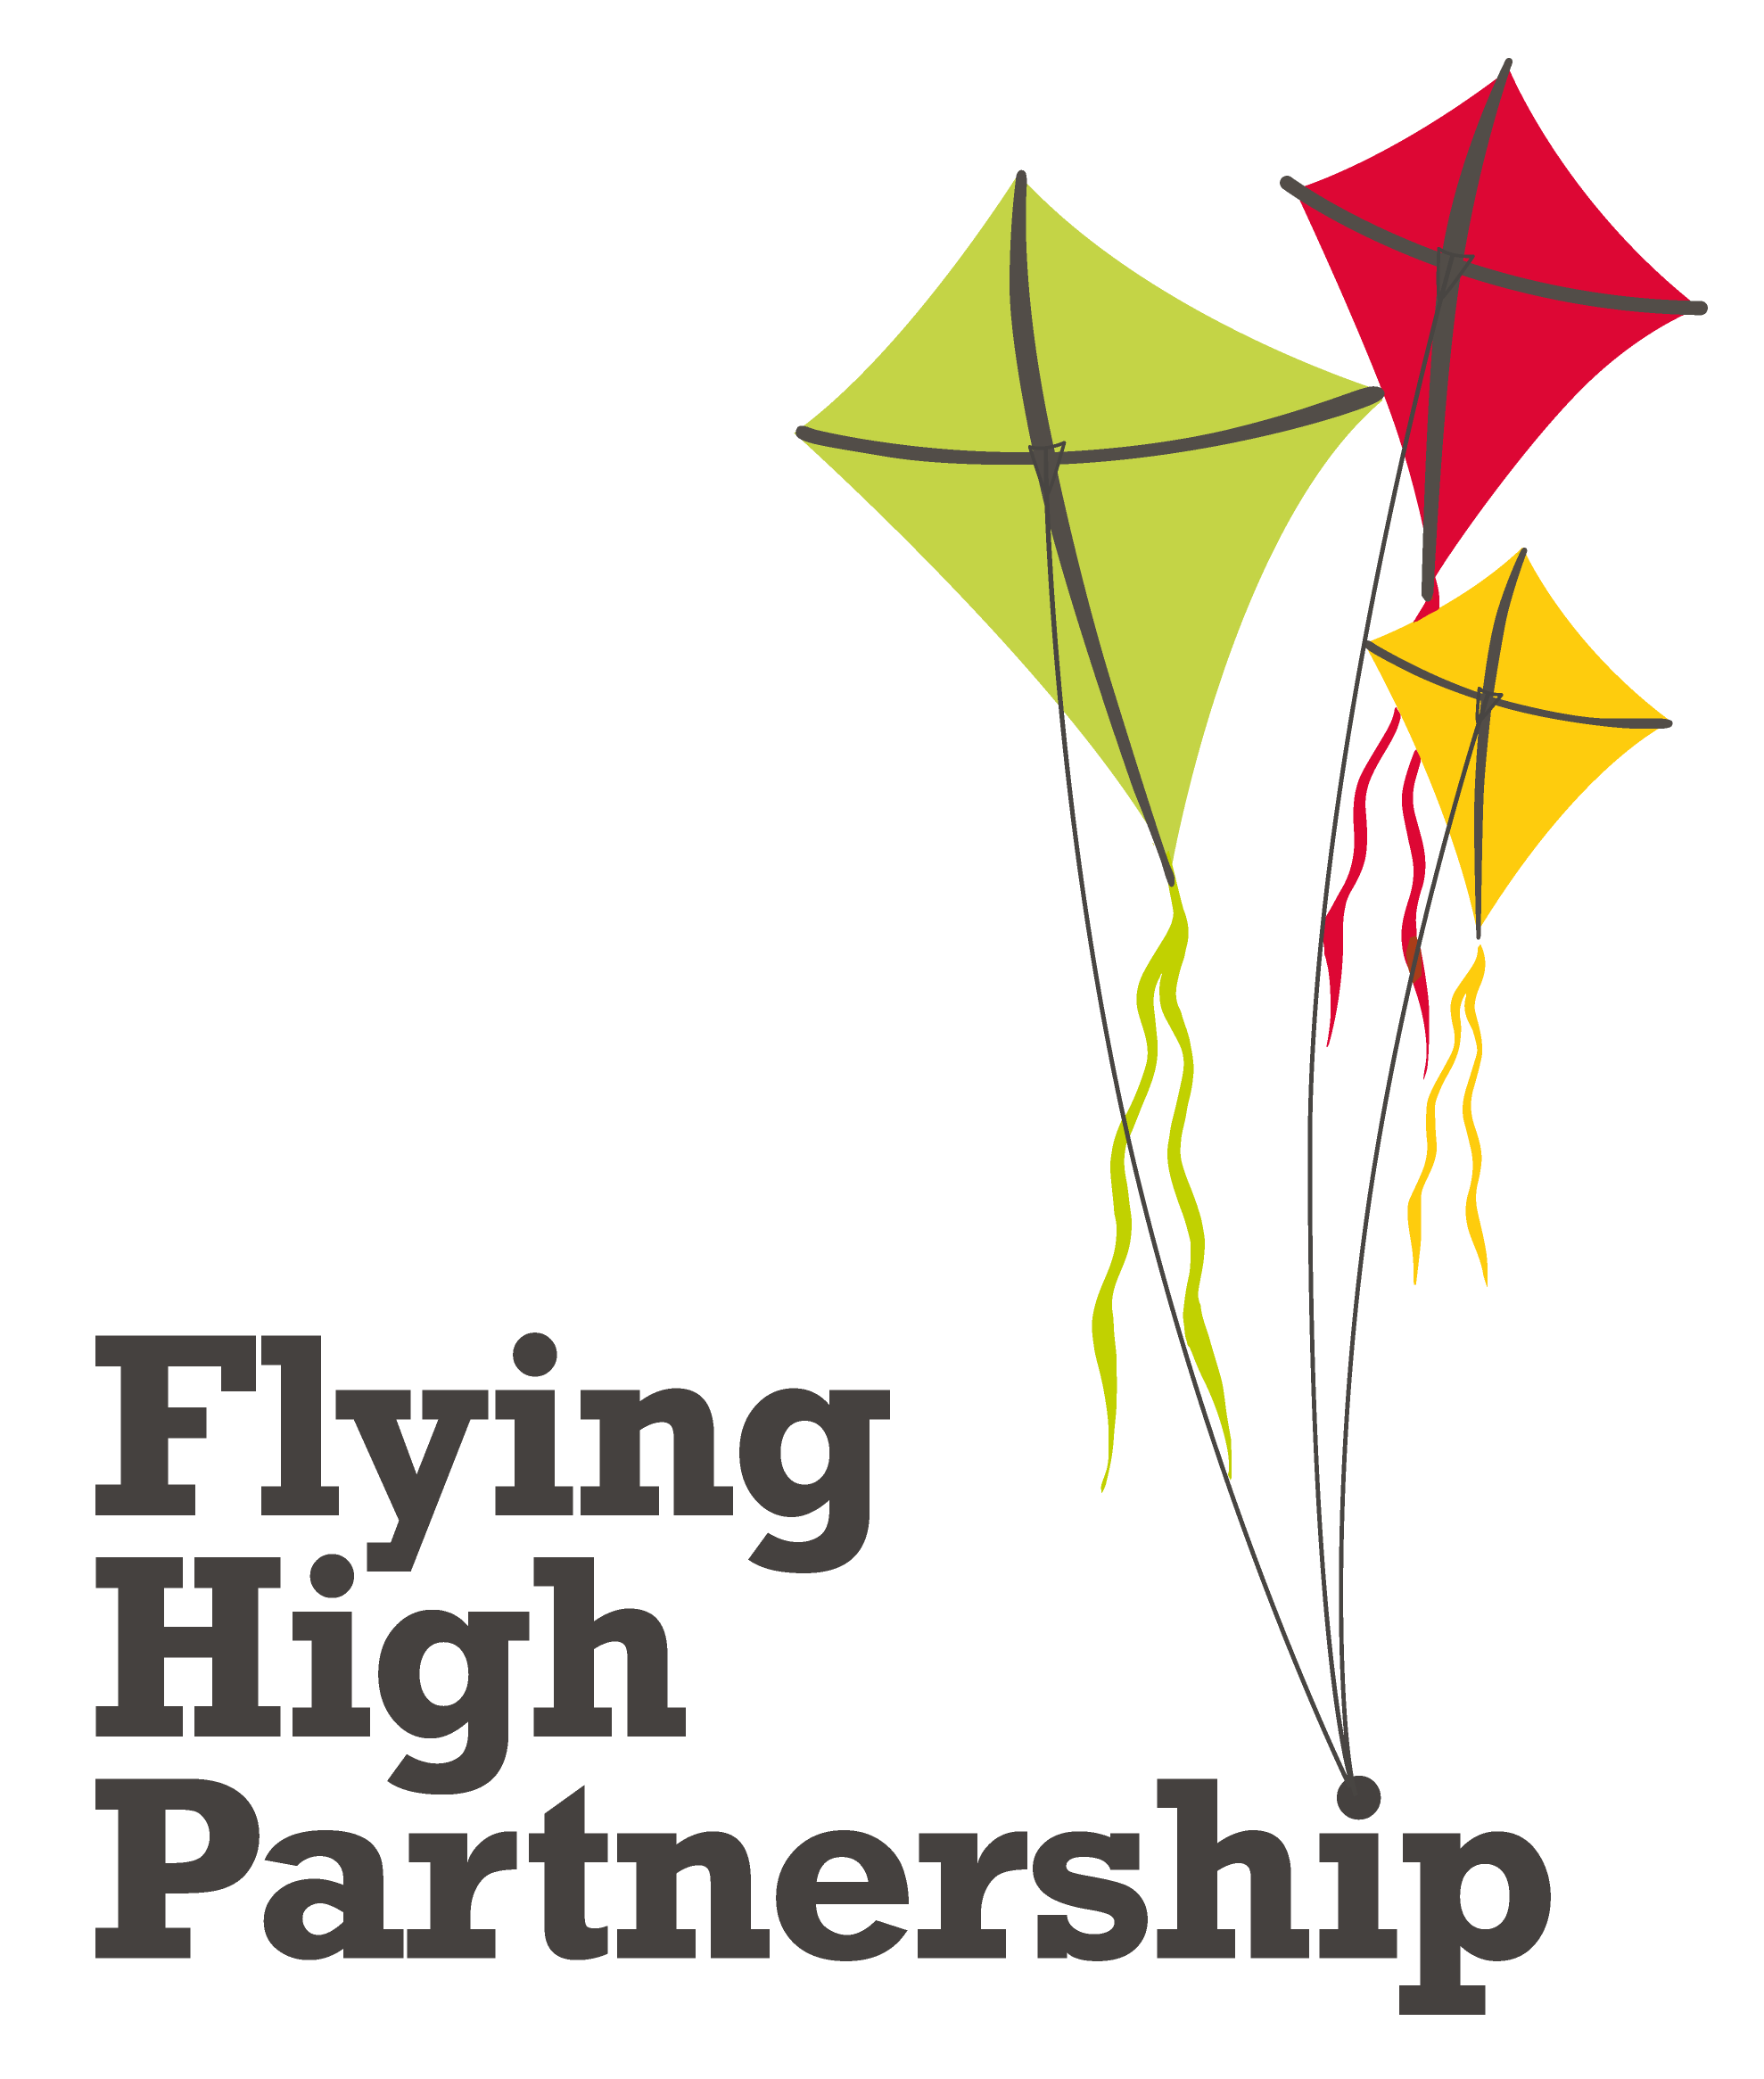 Flying High Partnership Logo